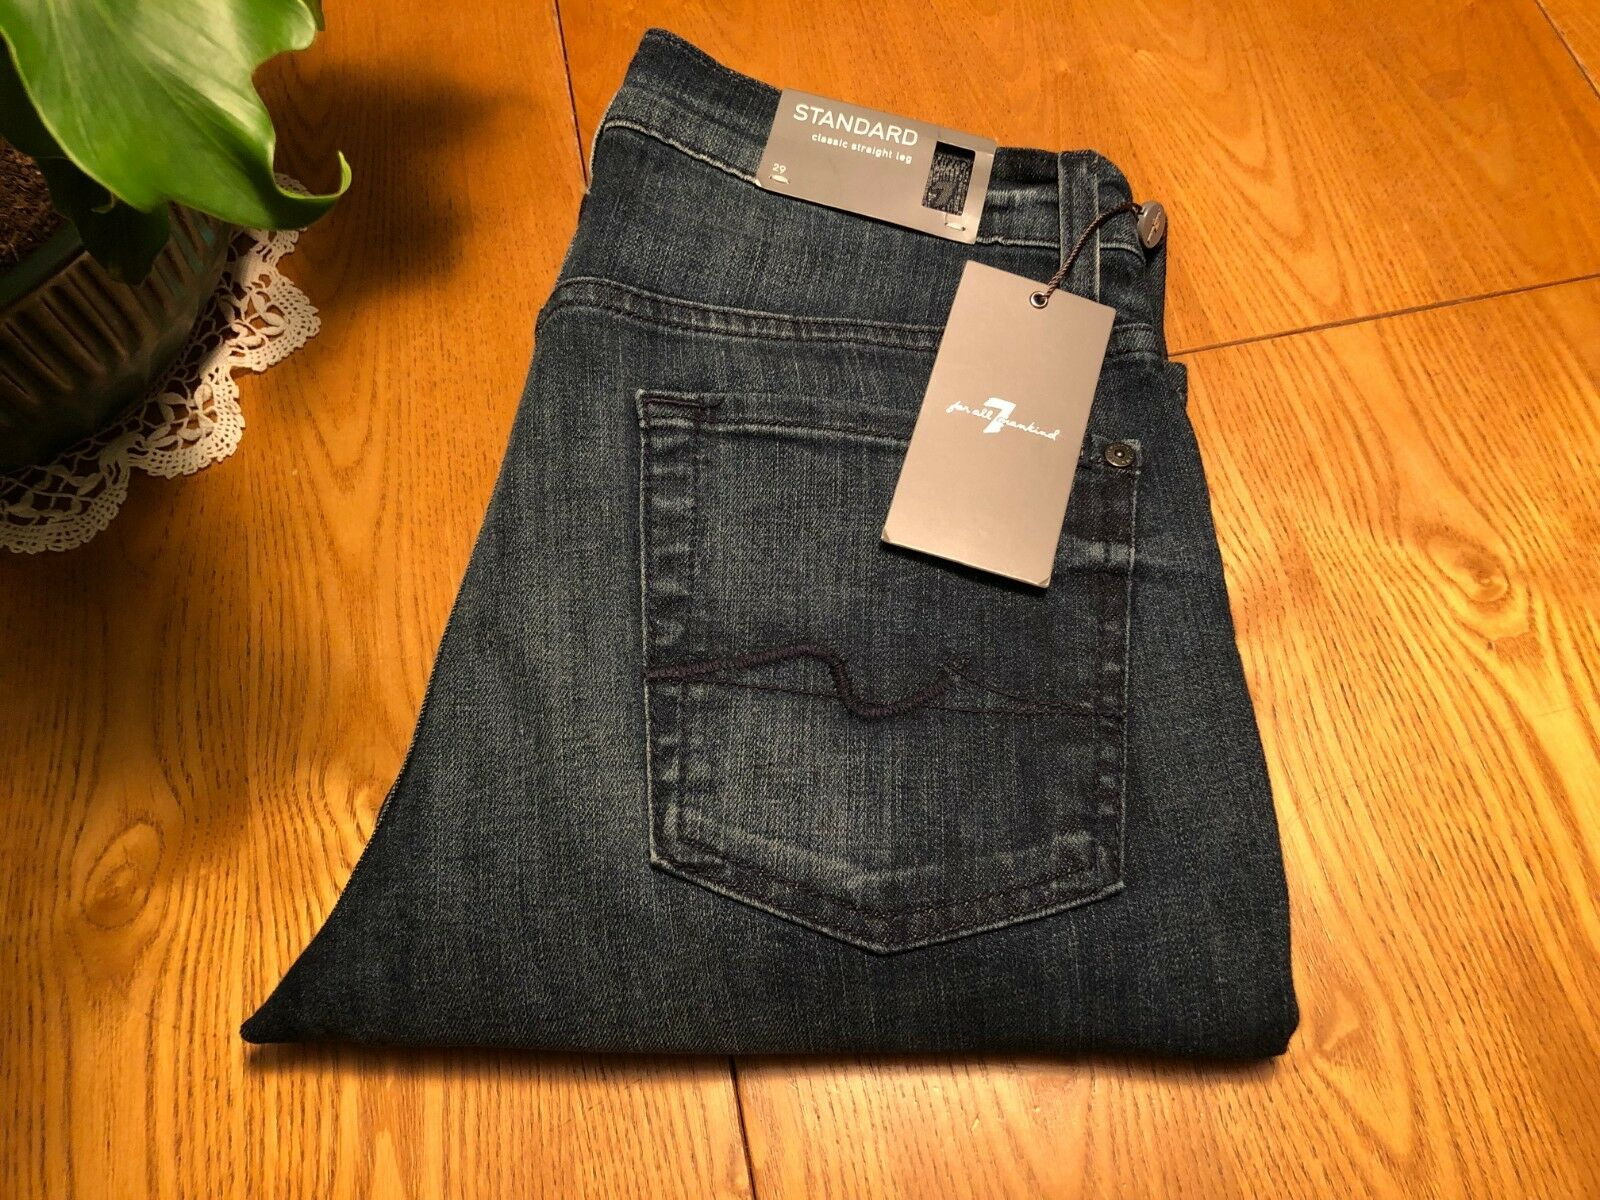 MENS 7 FOR ALL MANKIND STANDARD STRAIGHT LEG JEANS 29 X 32.5 NWT...VERY NICE